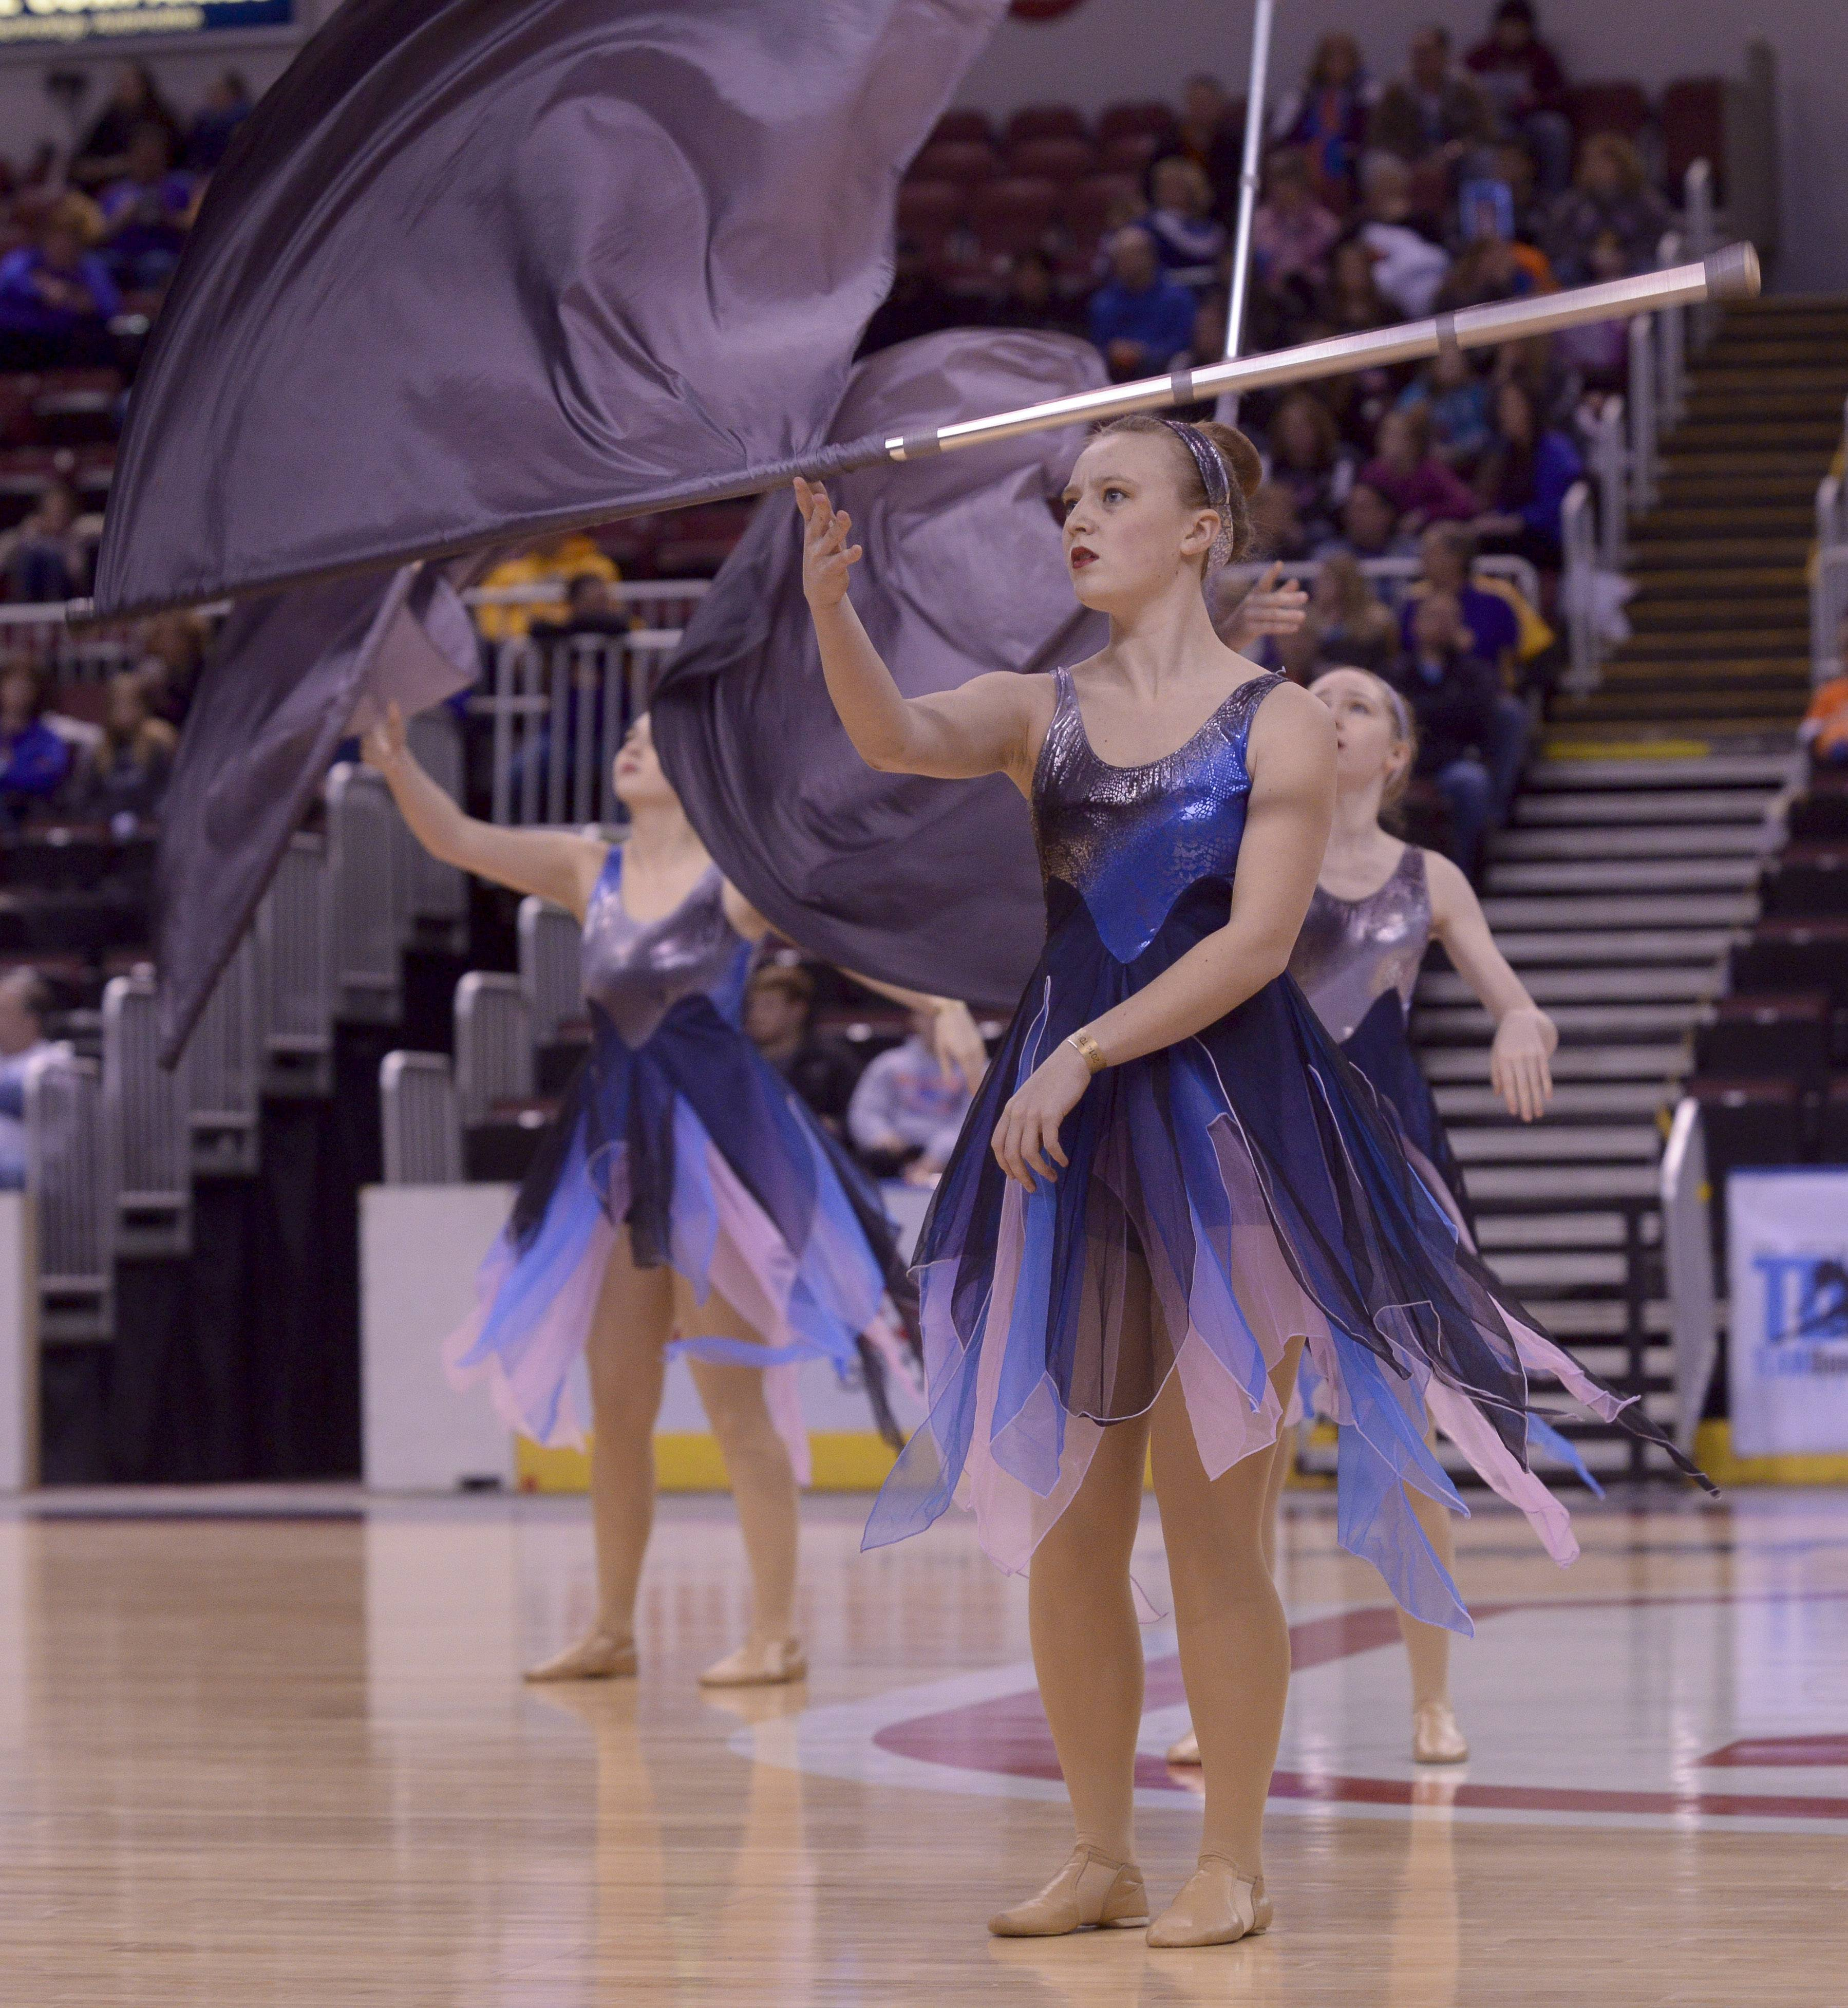 Grayslake North High School performs in the Varsity Flag Open Flag category during the TEAMDance Illinois 2014 Grand Championship in Peoria, Sunday March 2nd.